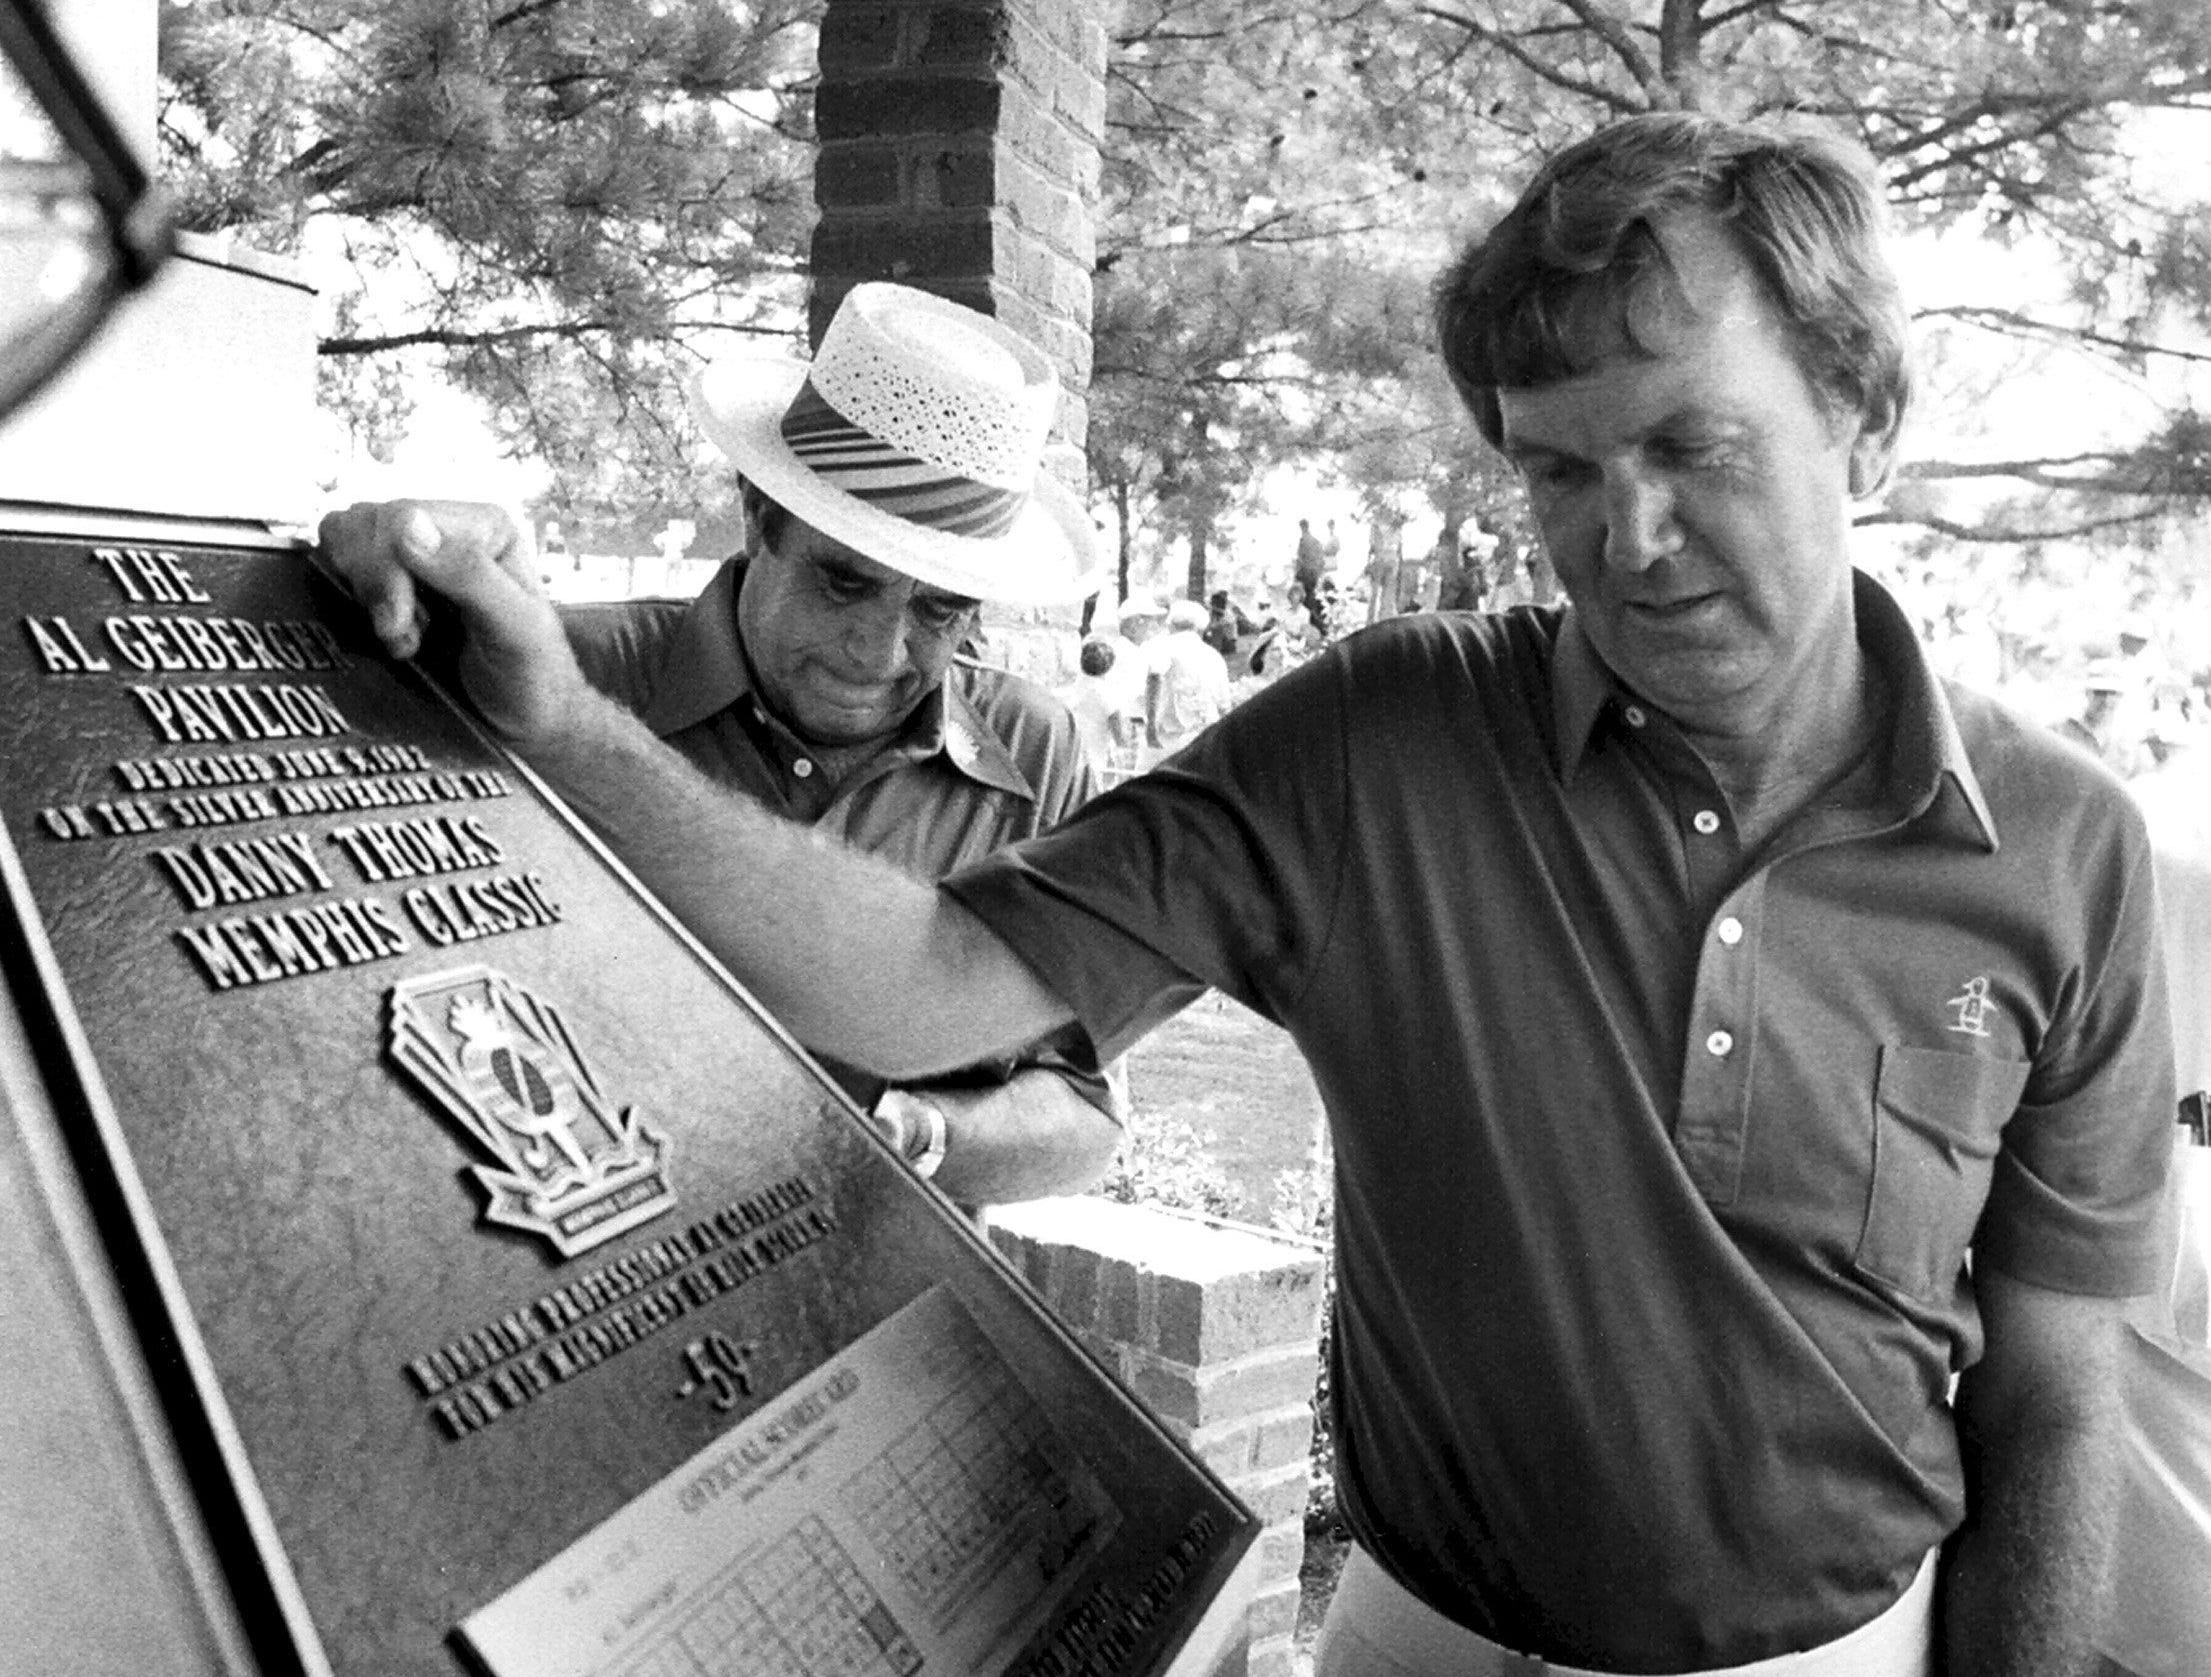 Professional golfer Al Geiberger looks over the plaque placed in the pavilion named in his honor at Colonial Country Club on 9 June 1982. The pavilion was dedicated on the Silver Anniversary of the Danny Thomas Memphis Classic. Geiberger's record low round of 59 was accomplished during the 1977 tournament.